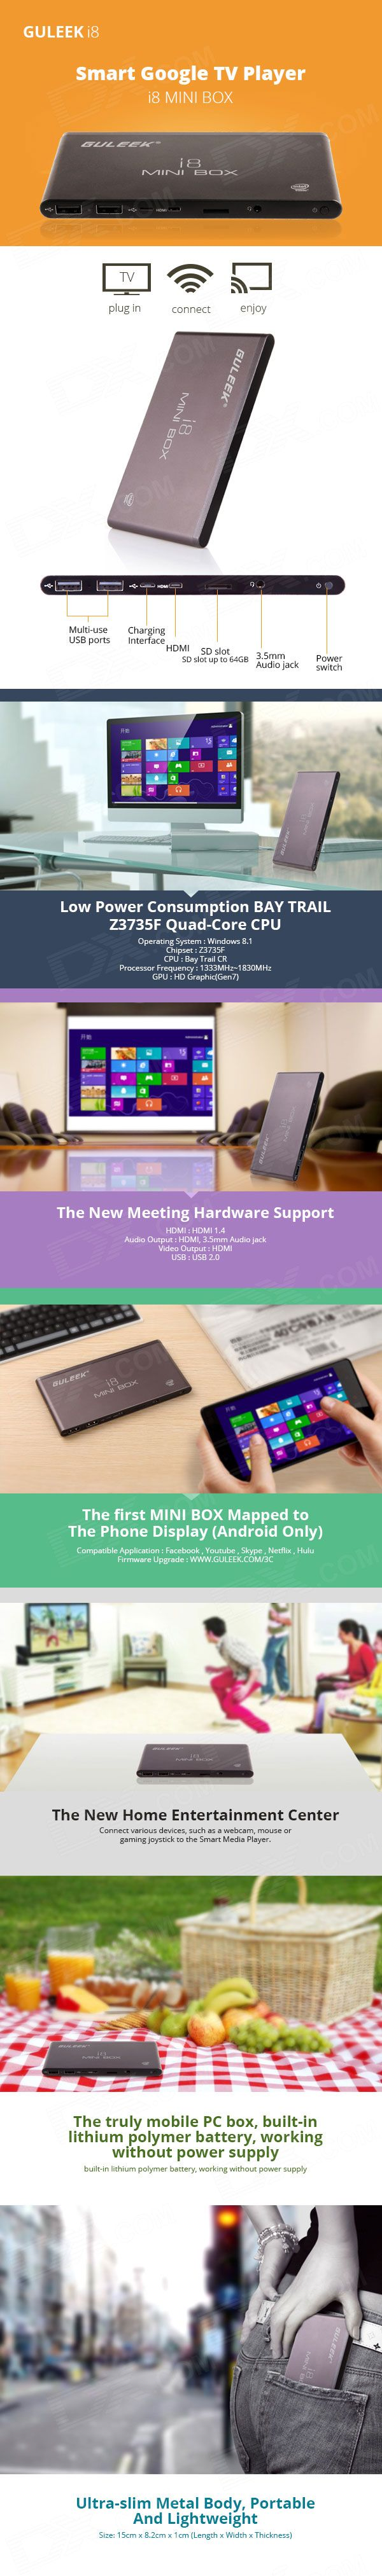 Intel Atom Z3735F quad-core processor, 2GB DDR3 RAM, 16GB of storage, a microSD card slot, 2 full-sized USB ports, a micro USB port (for charging), a micro HDMI port, a headset jack, microphone, 802.11b/g/n WiFi, Bluetooth 4.0, 3000mAh battery (allowing usage as a portable media player without need of a power adapter), all this in a ultra-slim, light-weight and noise-free fanless design.  Read more: http://www.megaleecher.net/GULEEK_i8_Intel_Quad_Core_Windows_8.1_Mini_HDMI_PC